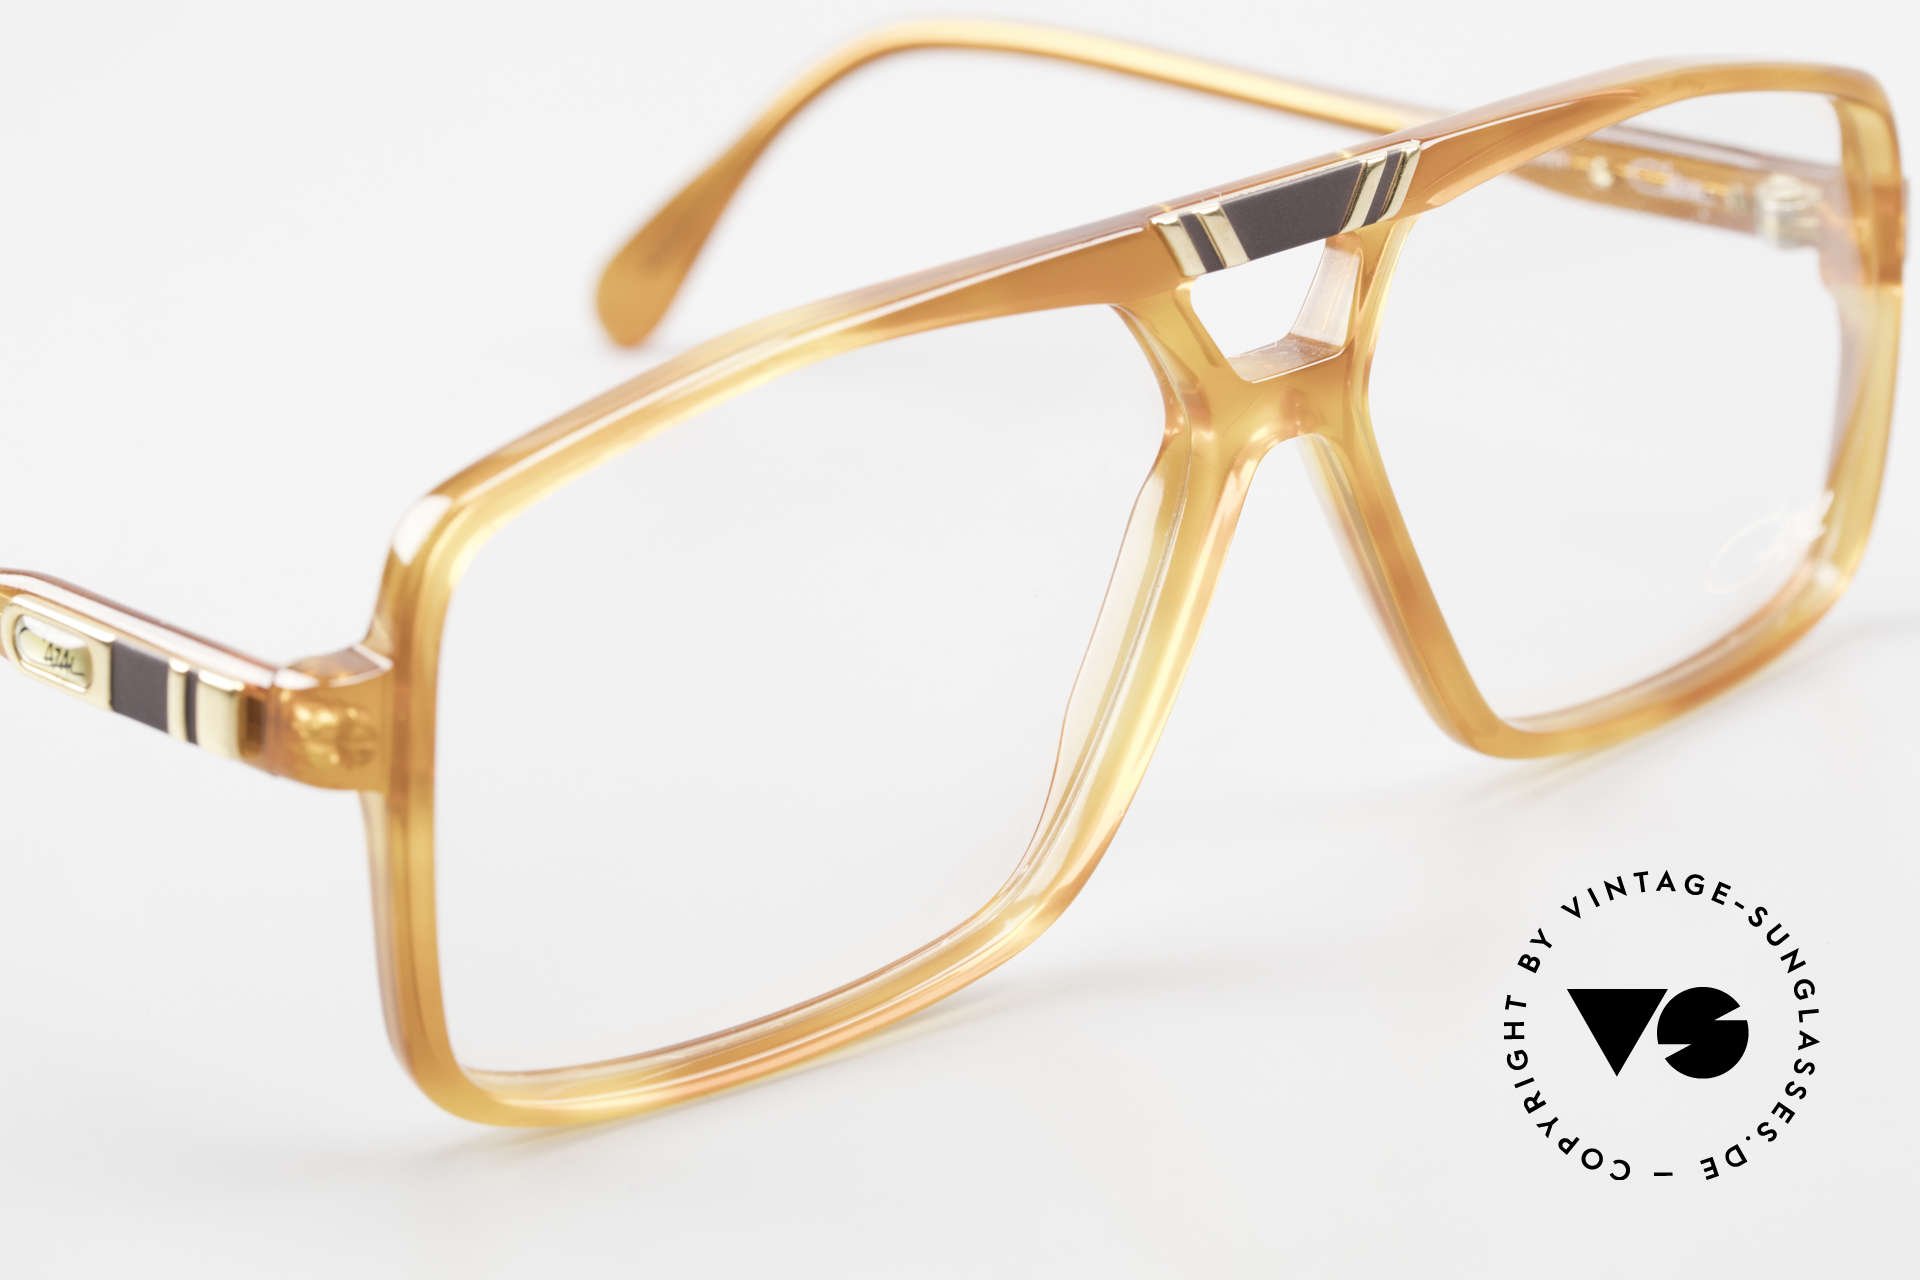 Cazal 637 West Germany 1980's Cazal, NO retro specs, but an old masterpiece, size 58/13, Made for Men